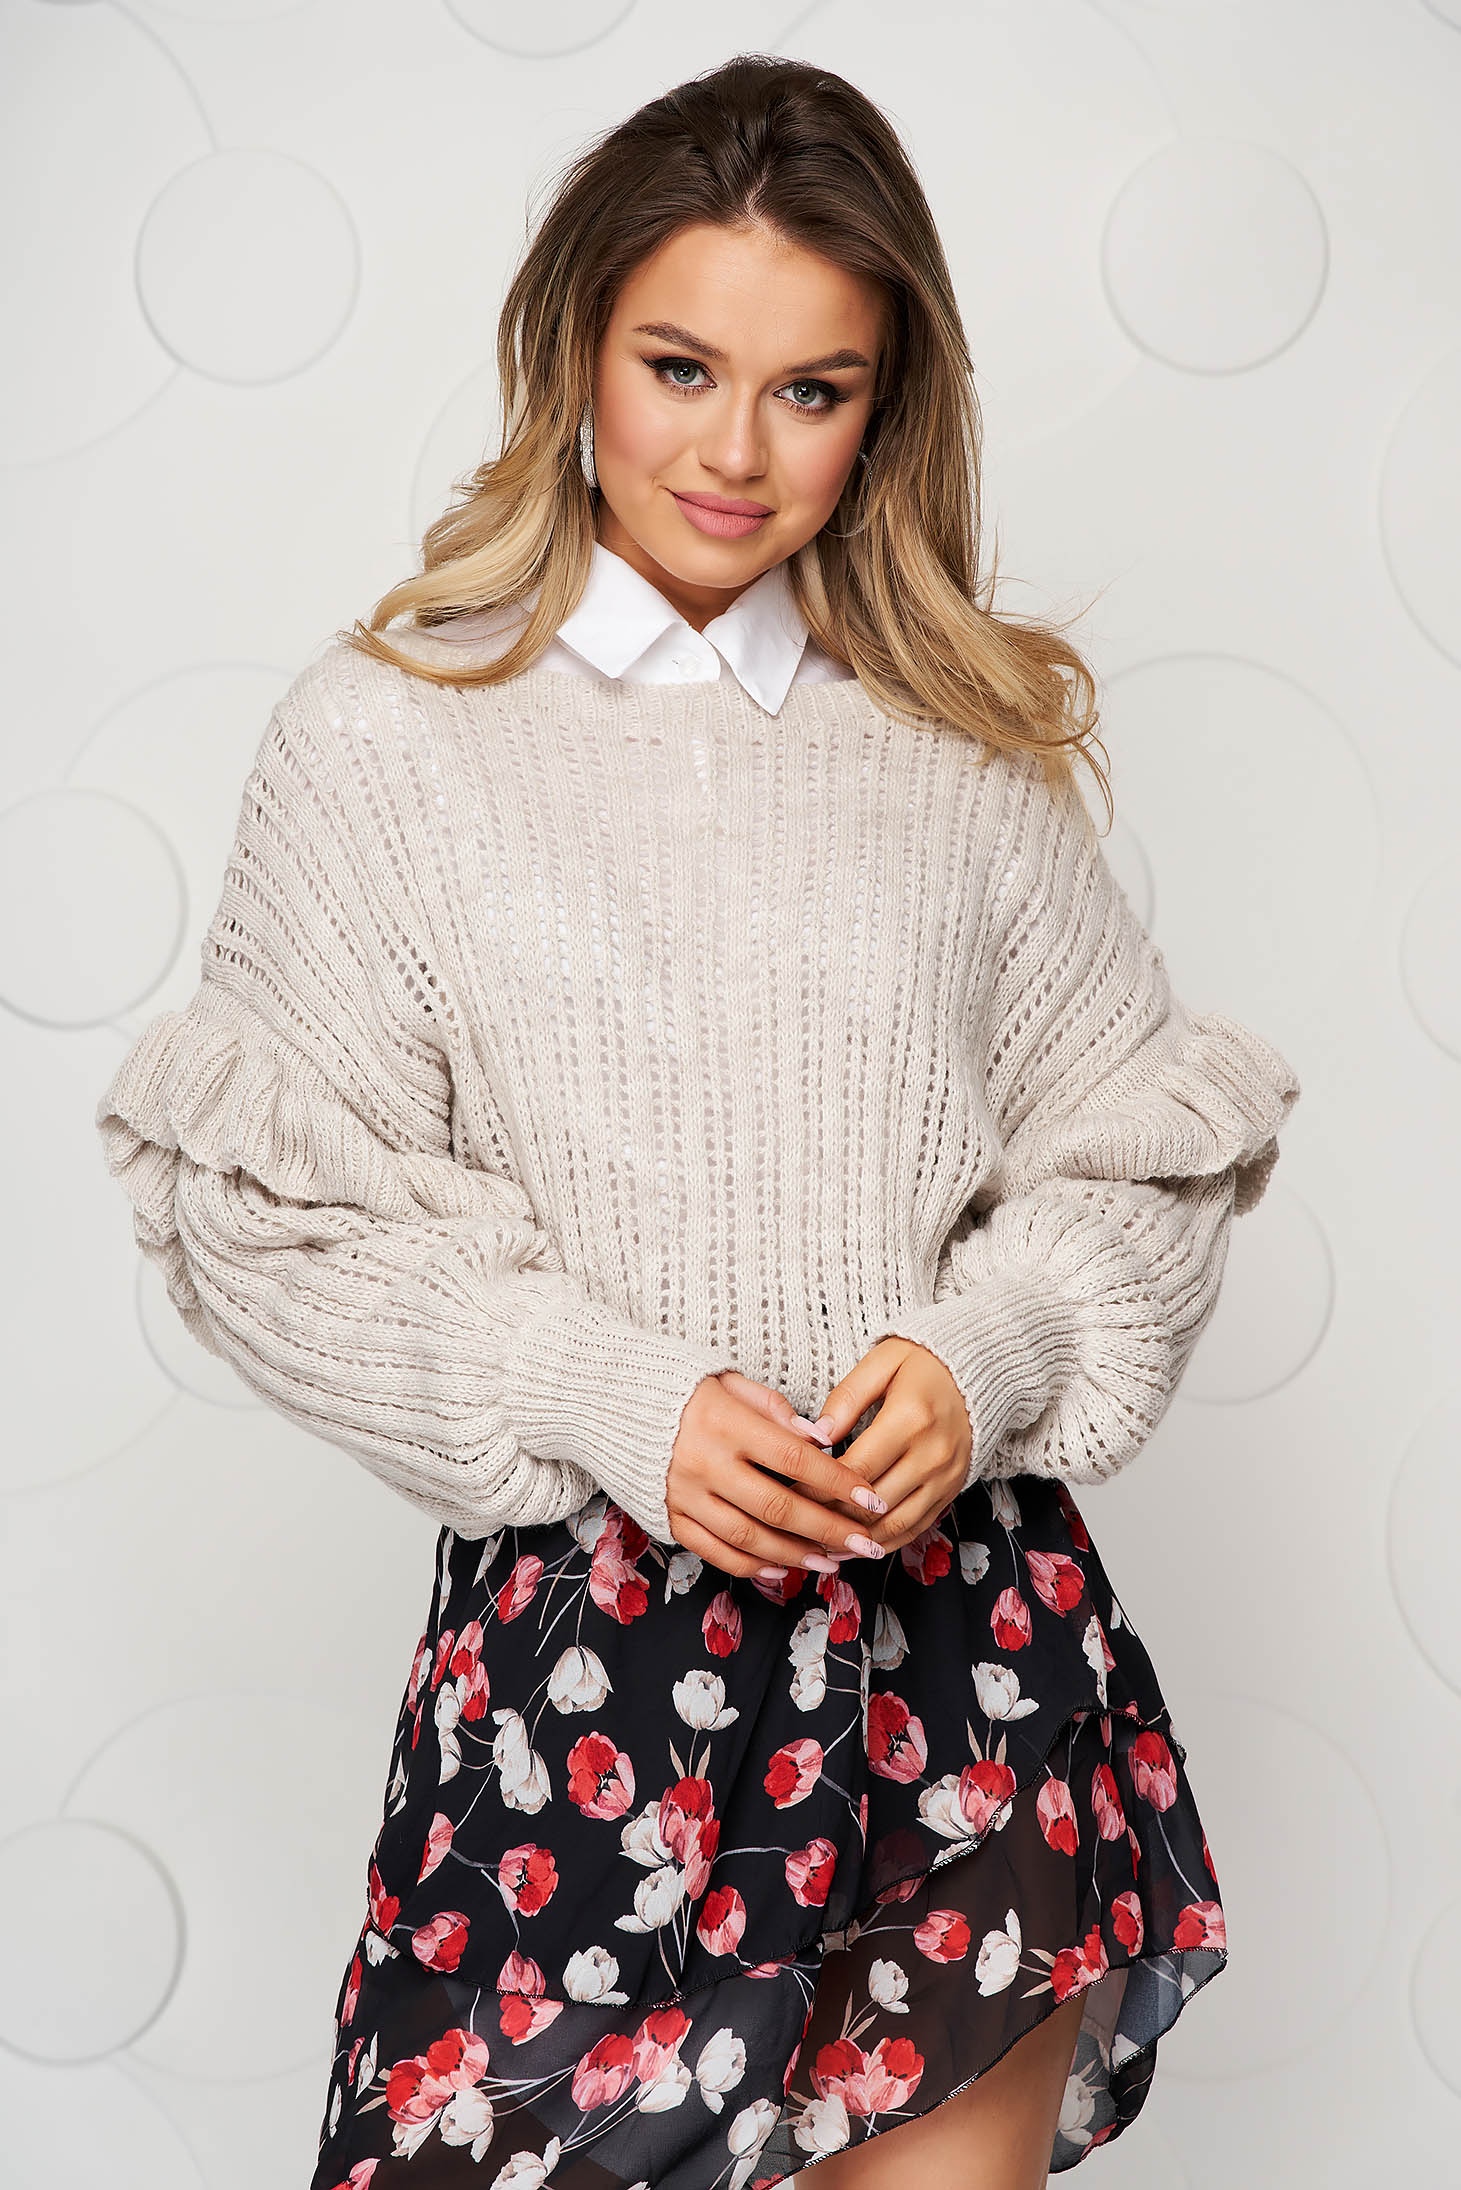 Knitted cream sweater transparent fabric with ruffle details loose fit